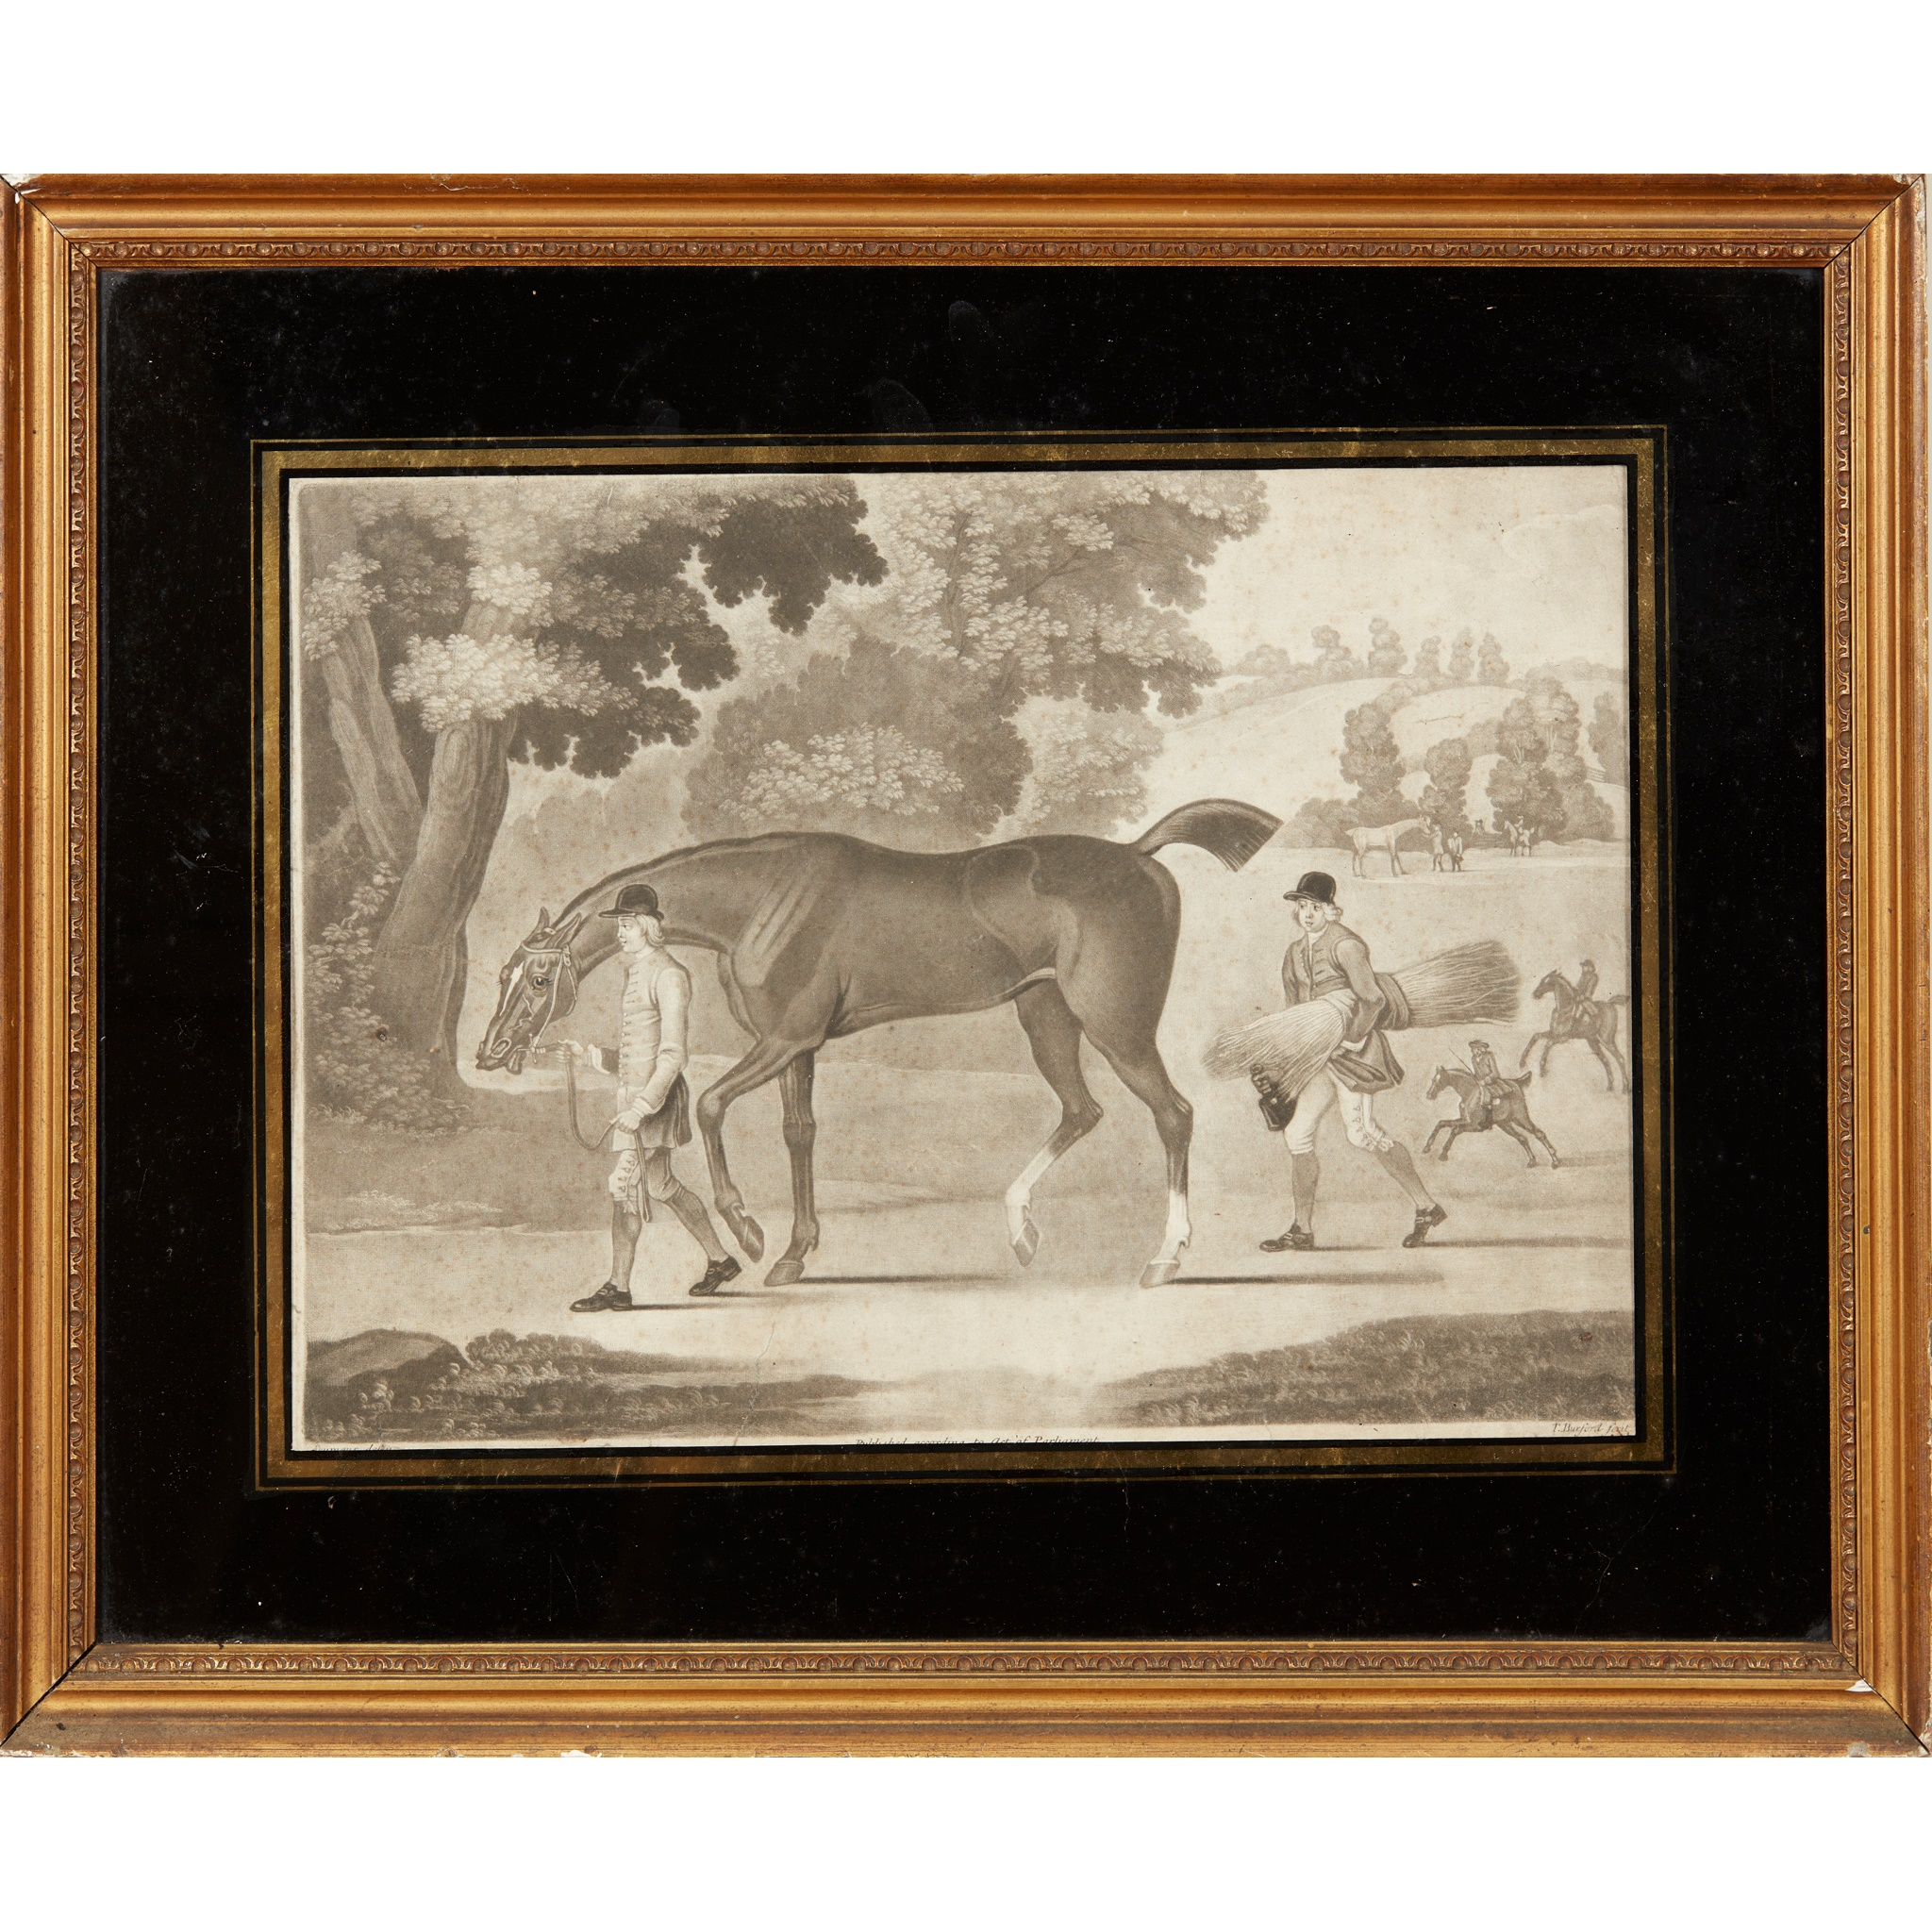 COLLECTION OF ELEVEN MEZZOTINT EQUESTRIAN PRINTS LATE 18TH CENTURY